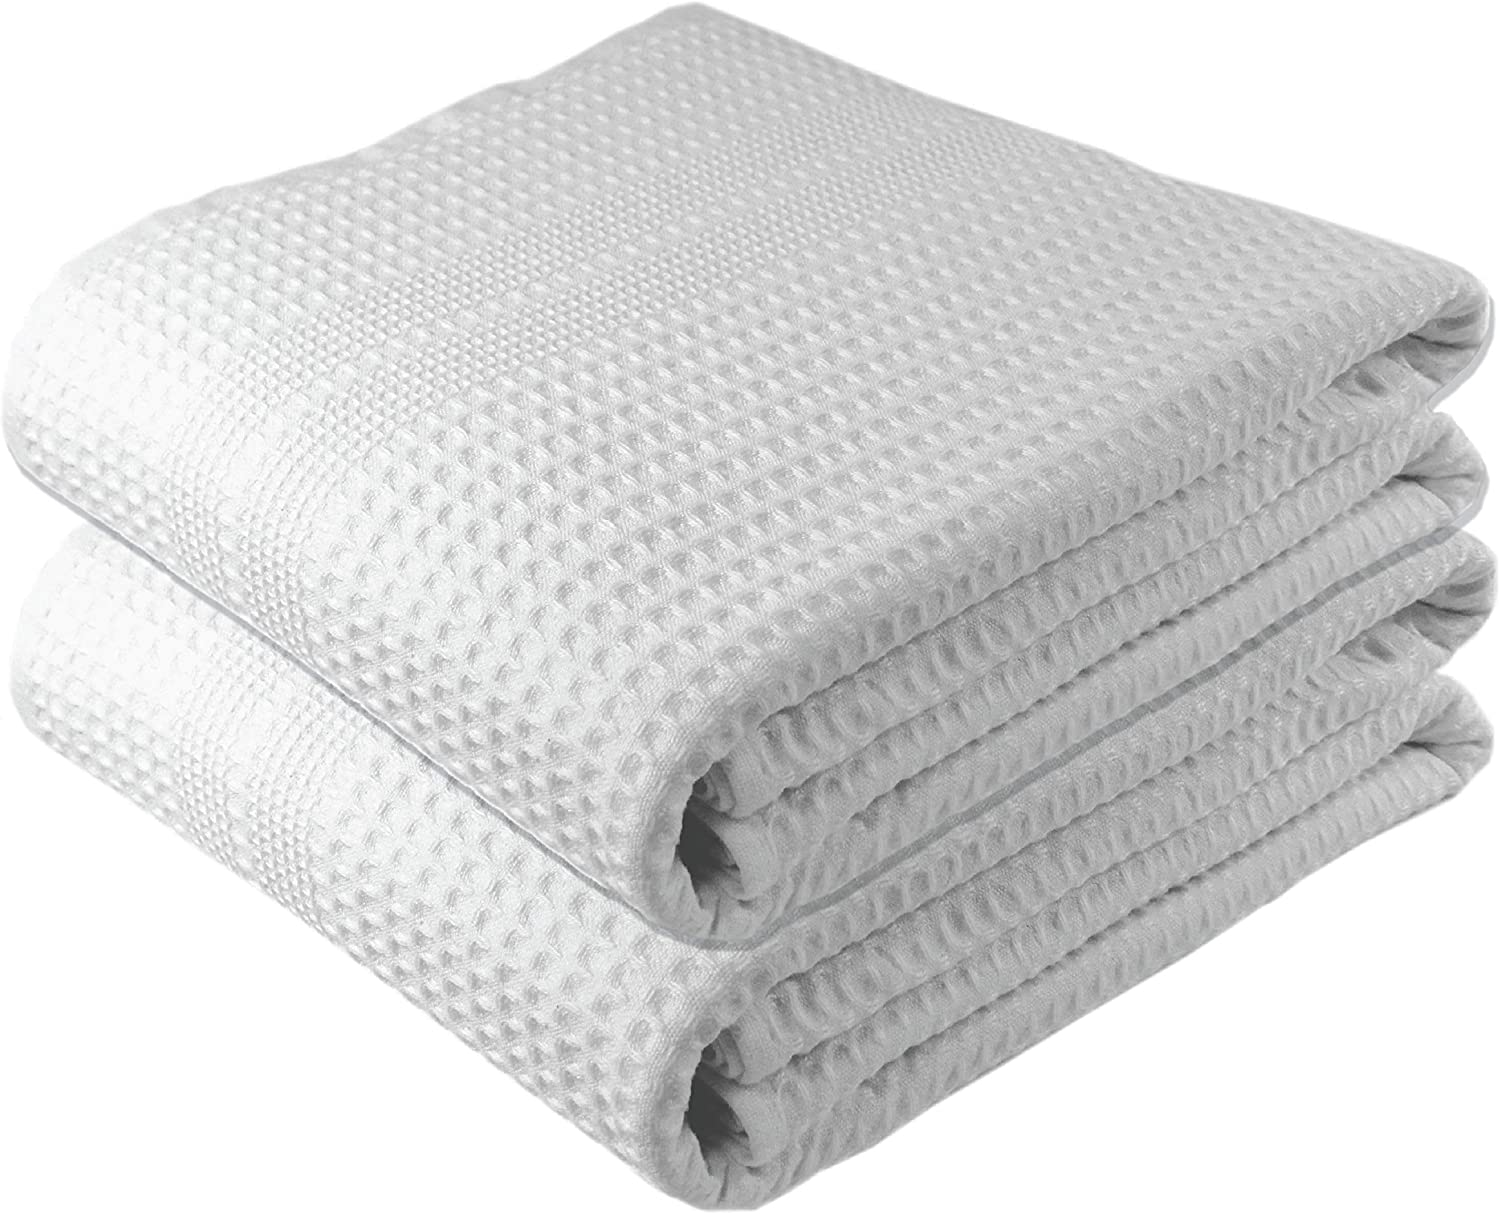 Premium Large 2 Pc Waffle Weave Bath Sheet 100% Natural Cotton – Generous Size Lightweight Ultra Absorbent Quick Drying Fade Resistant (White): Kitchen & Dining